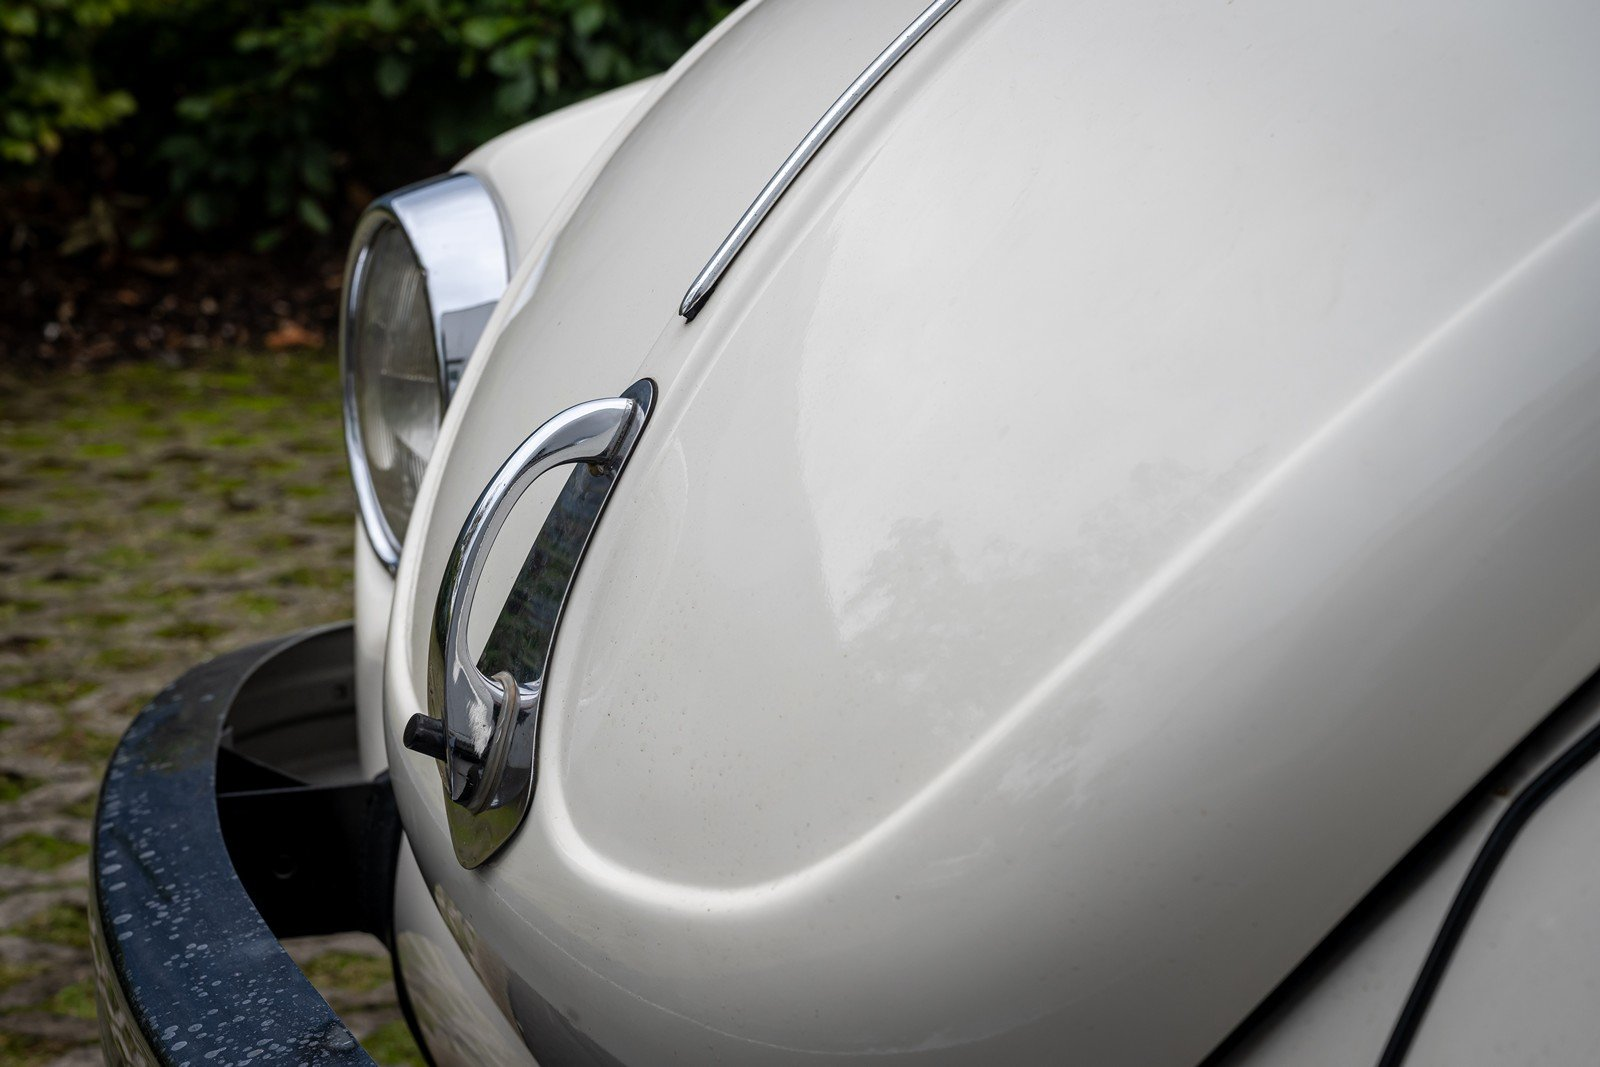 1973 Volkswagen Beetle Type 1303 Cabriolet For Sale (picture 27 of 39)